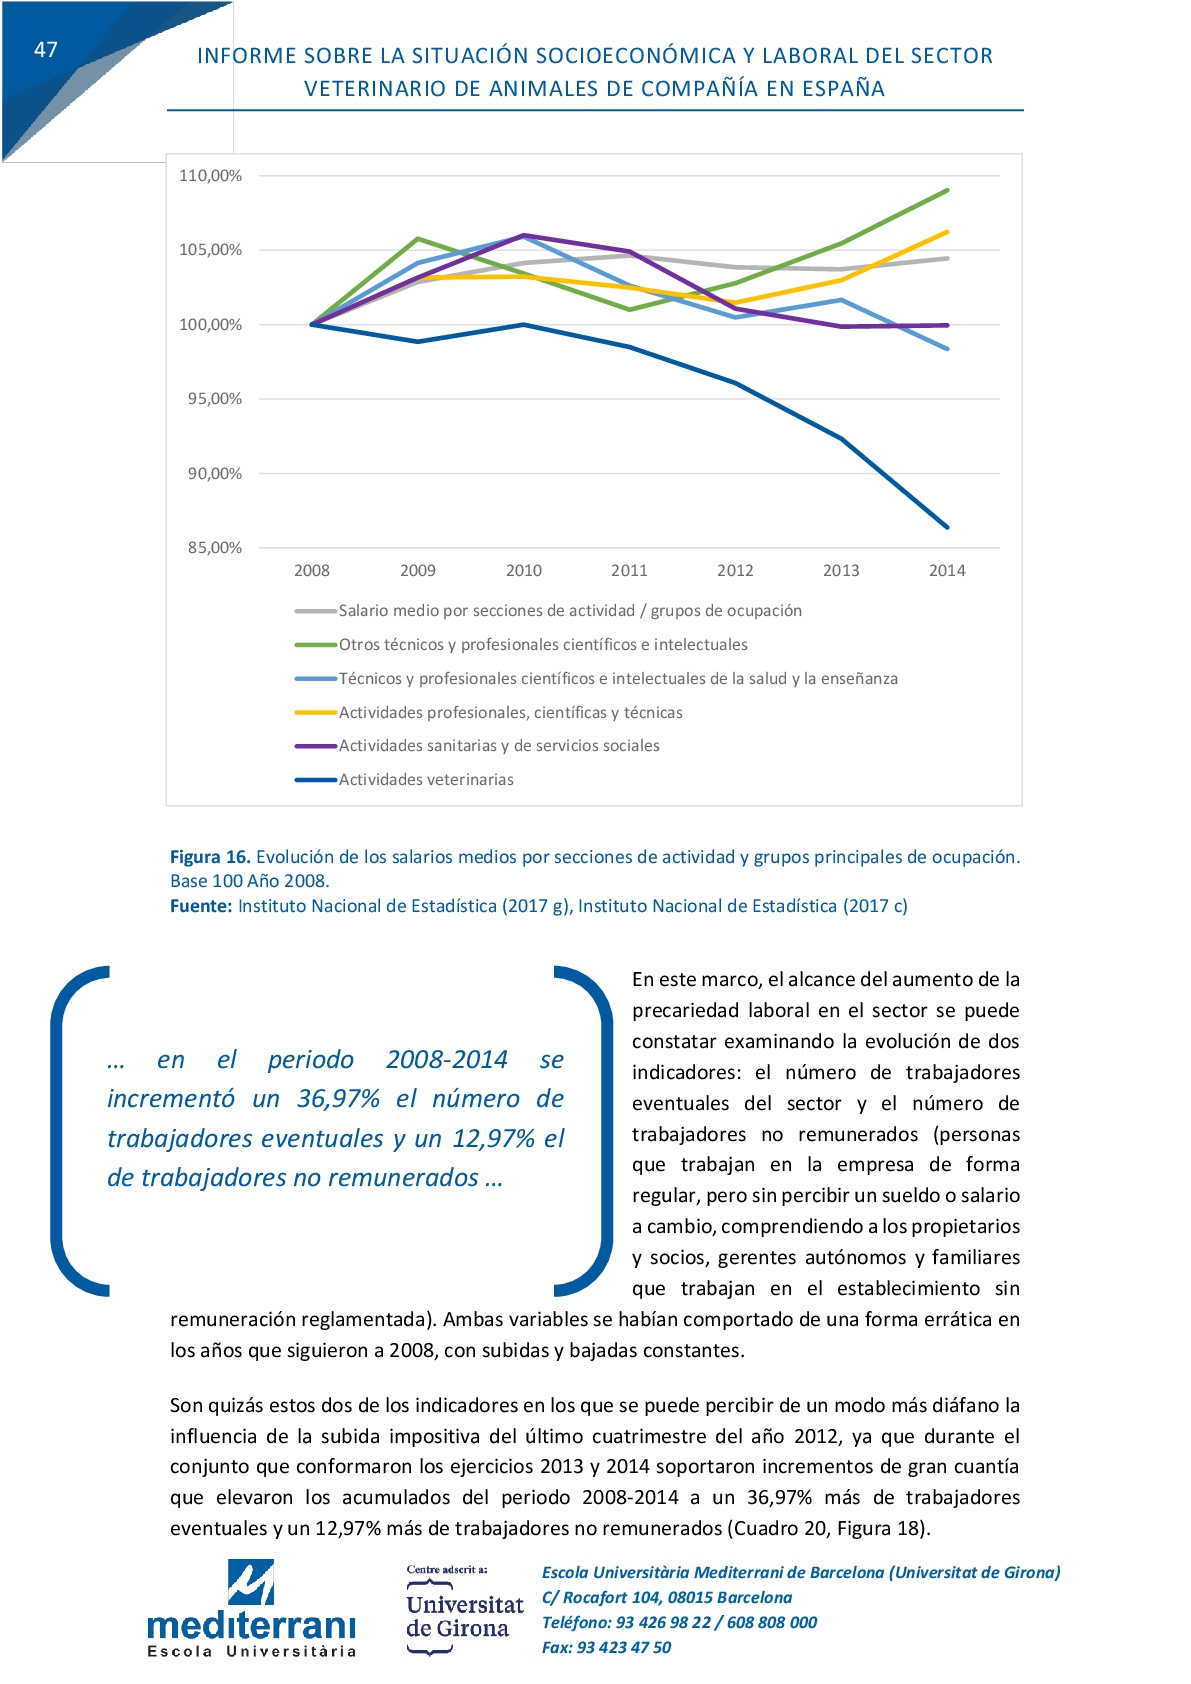 Informe-Veterinario-2017-+-informe-legal-2015-(3)-052